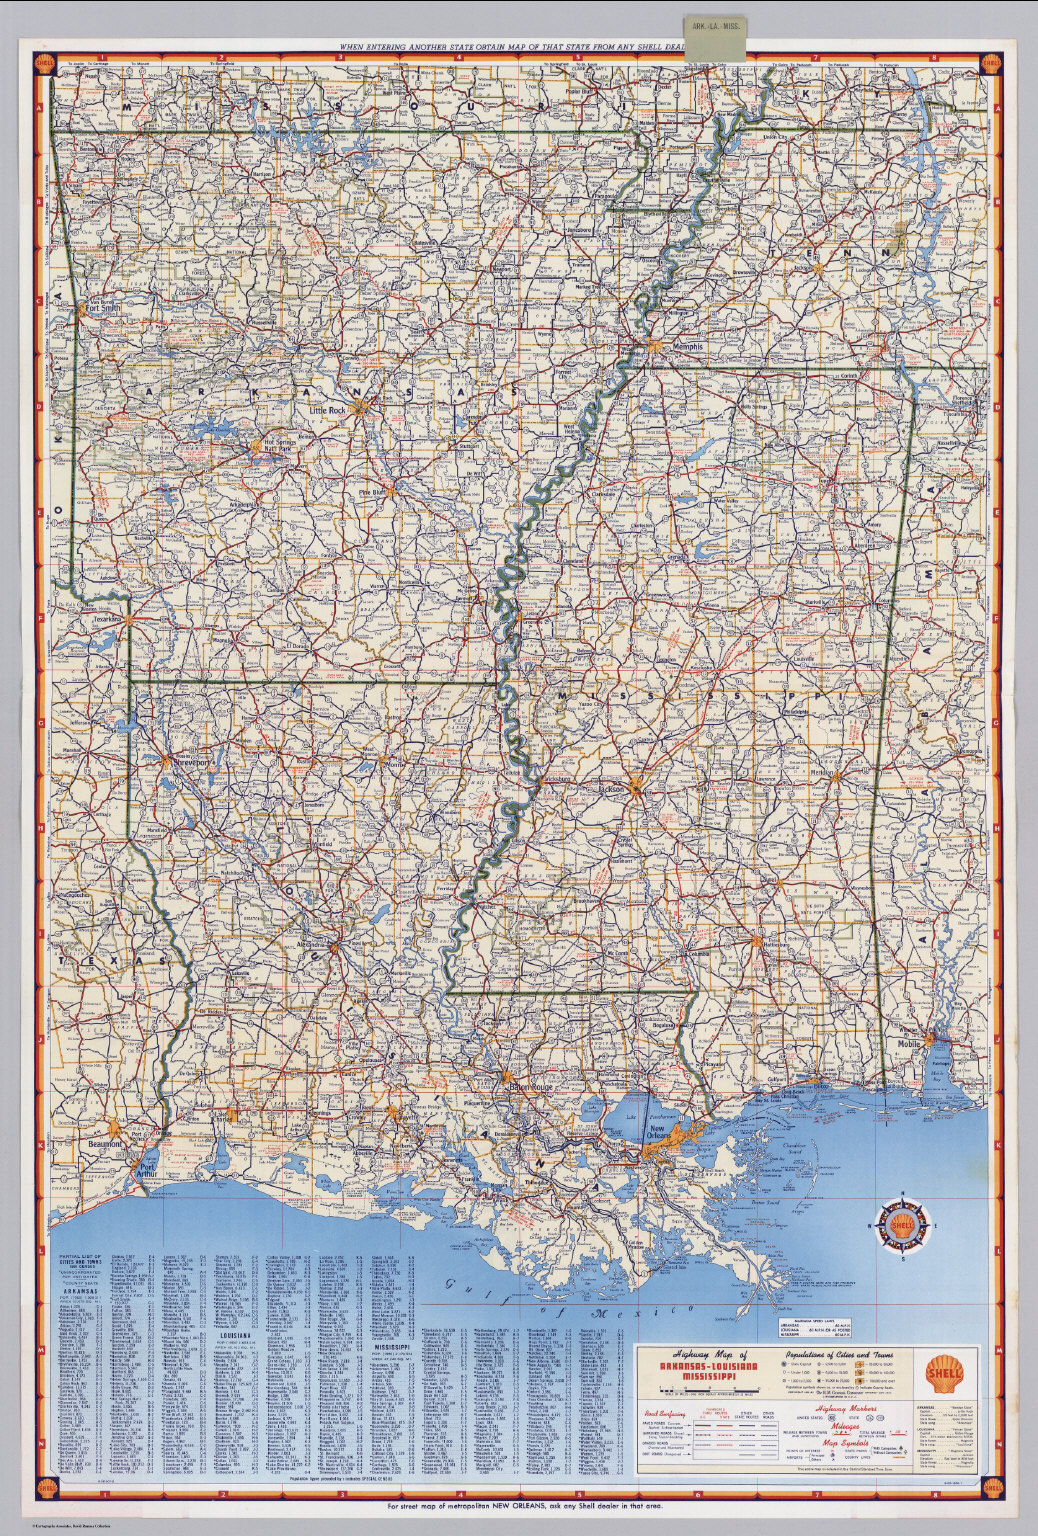 Shell Highway Map Of ArkansasLouisiana Mississippi David - Arkansas highway map